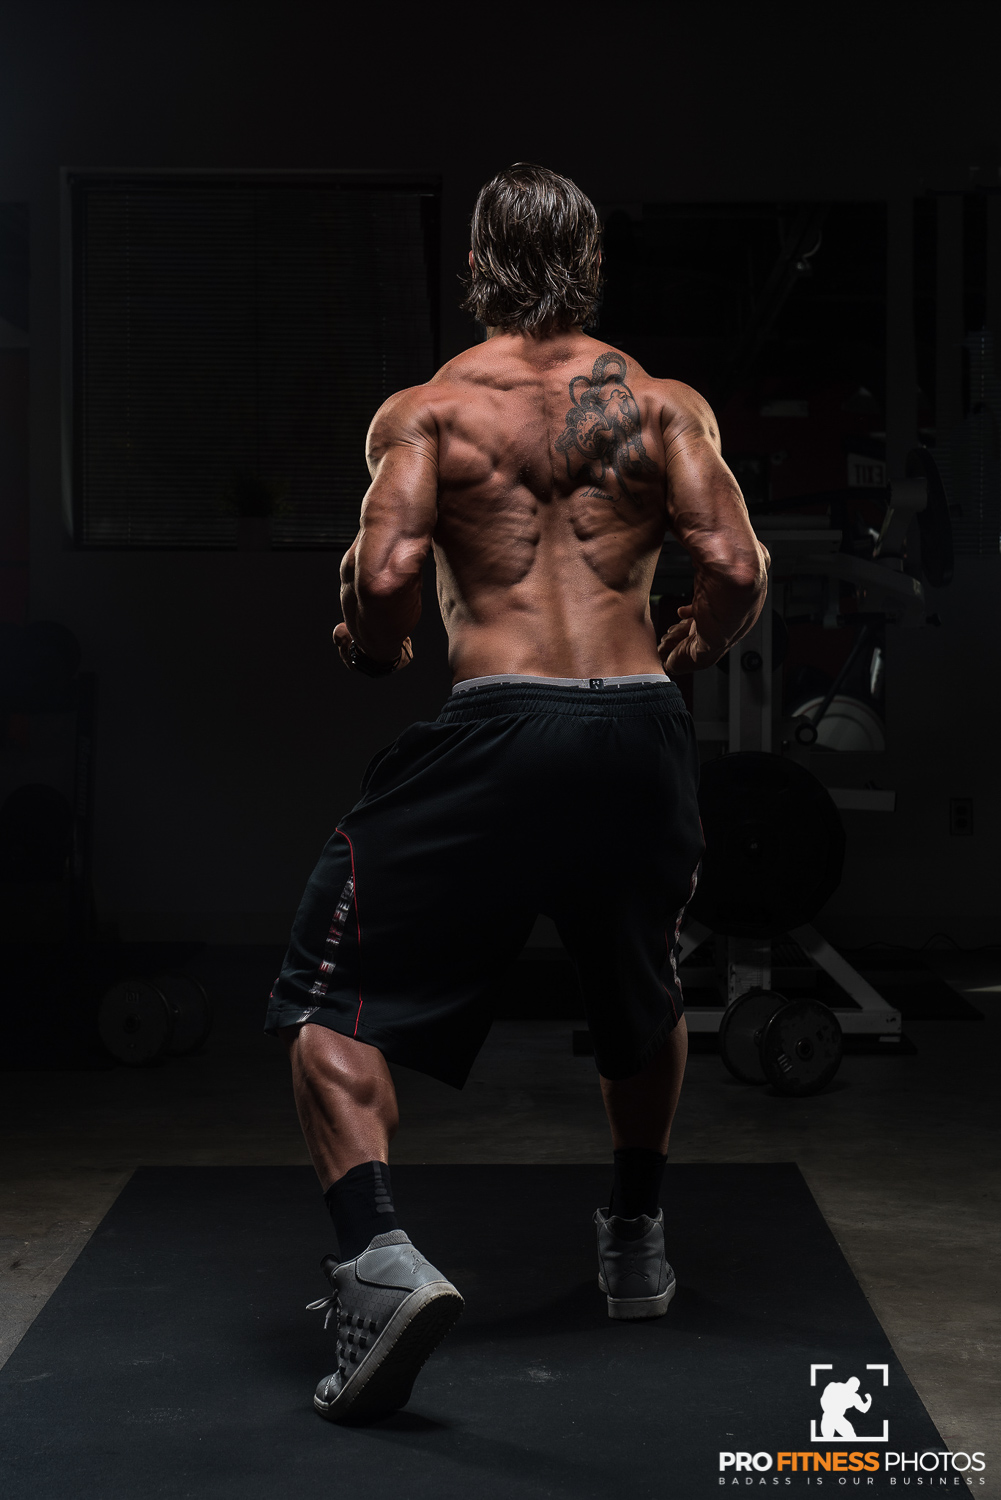 utah-fitness-photographer-dane-01.jpg